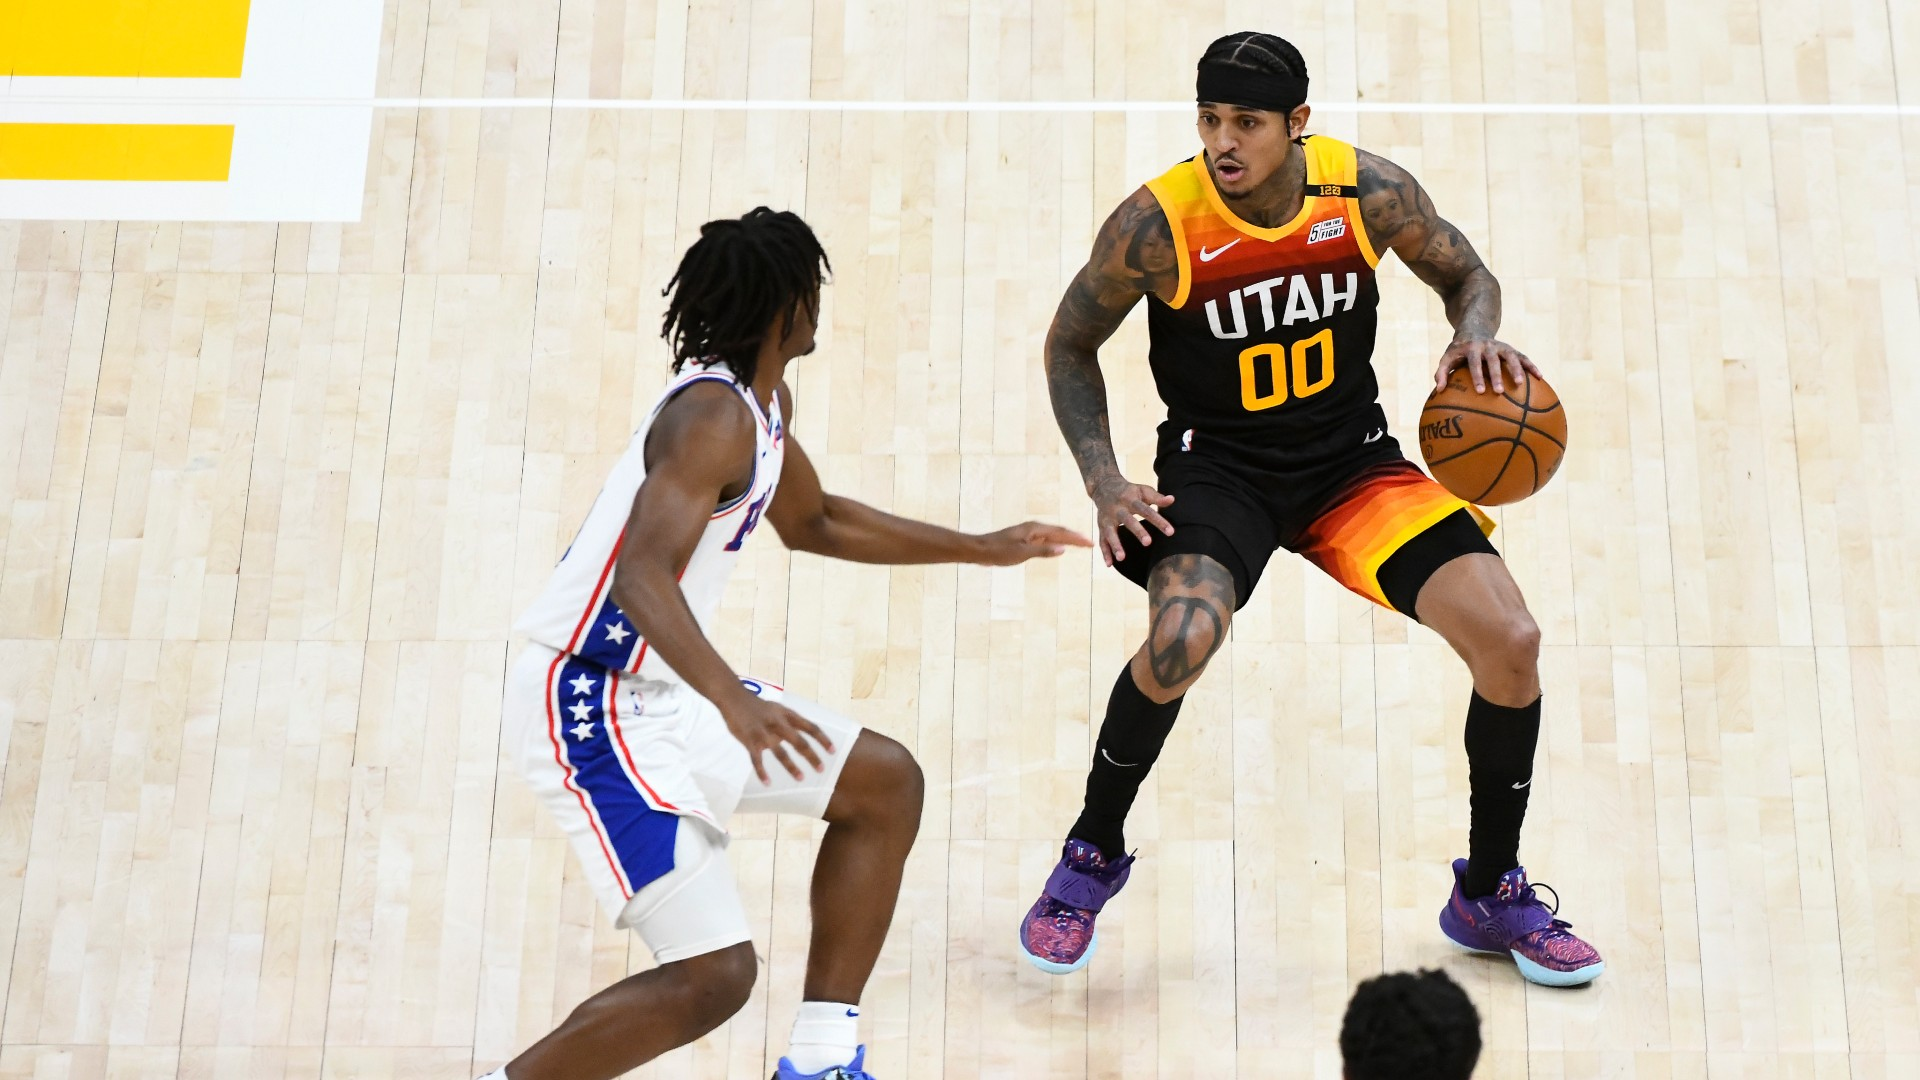 Simmons' career high not enough as Clarkson's Jazz outgun 76ers in NBA shoot-out